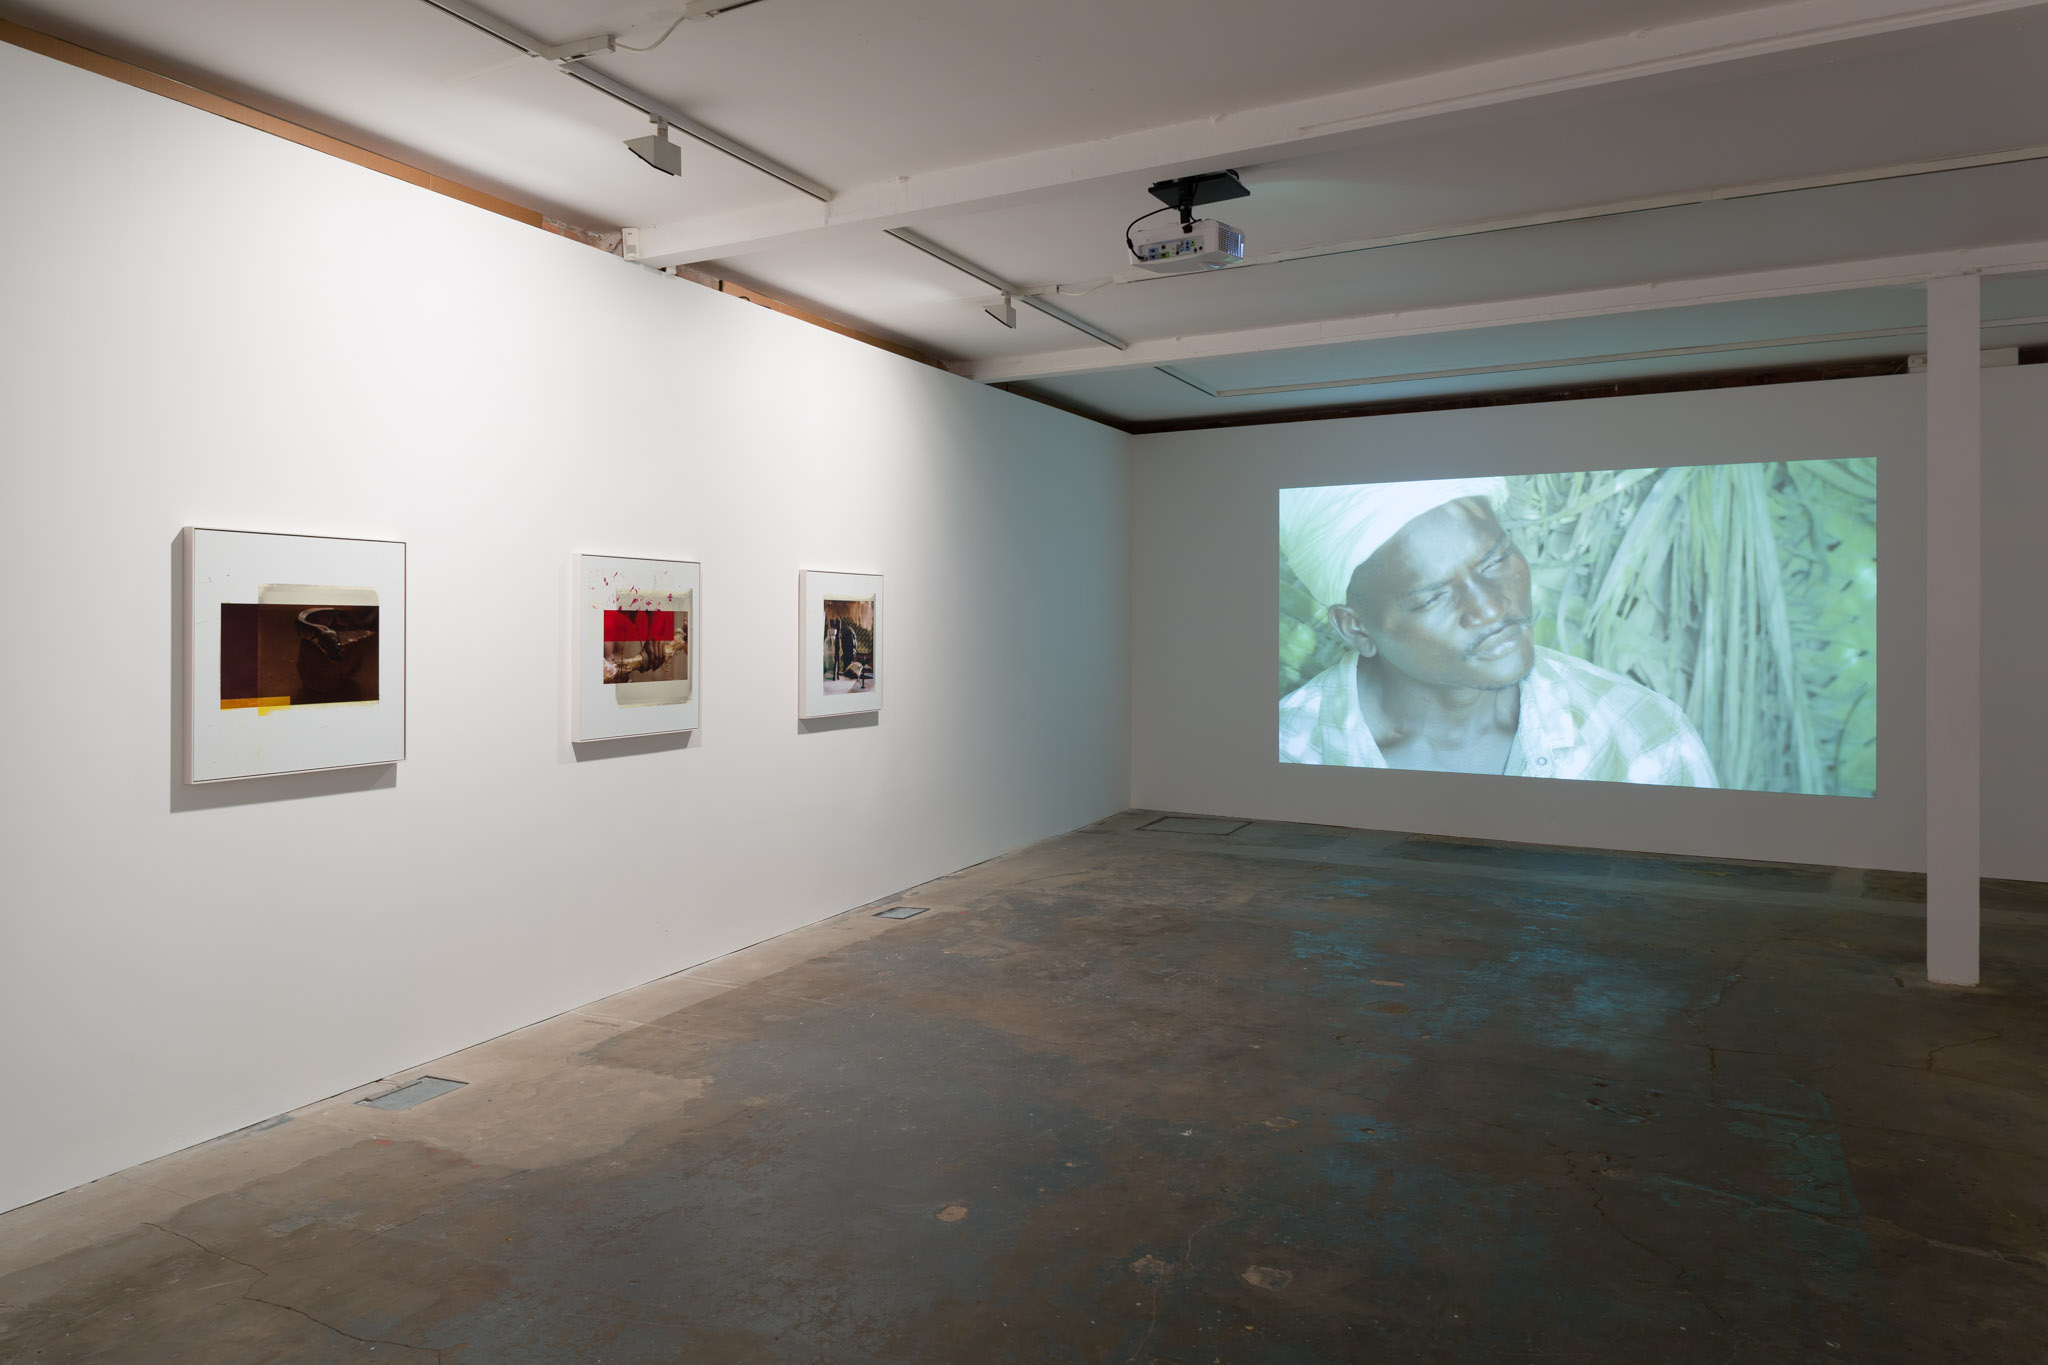 Installation view. La Vague d'Esprit , Markus Selg